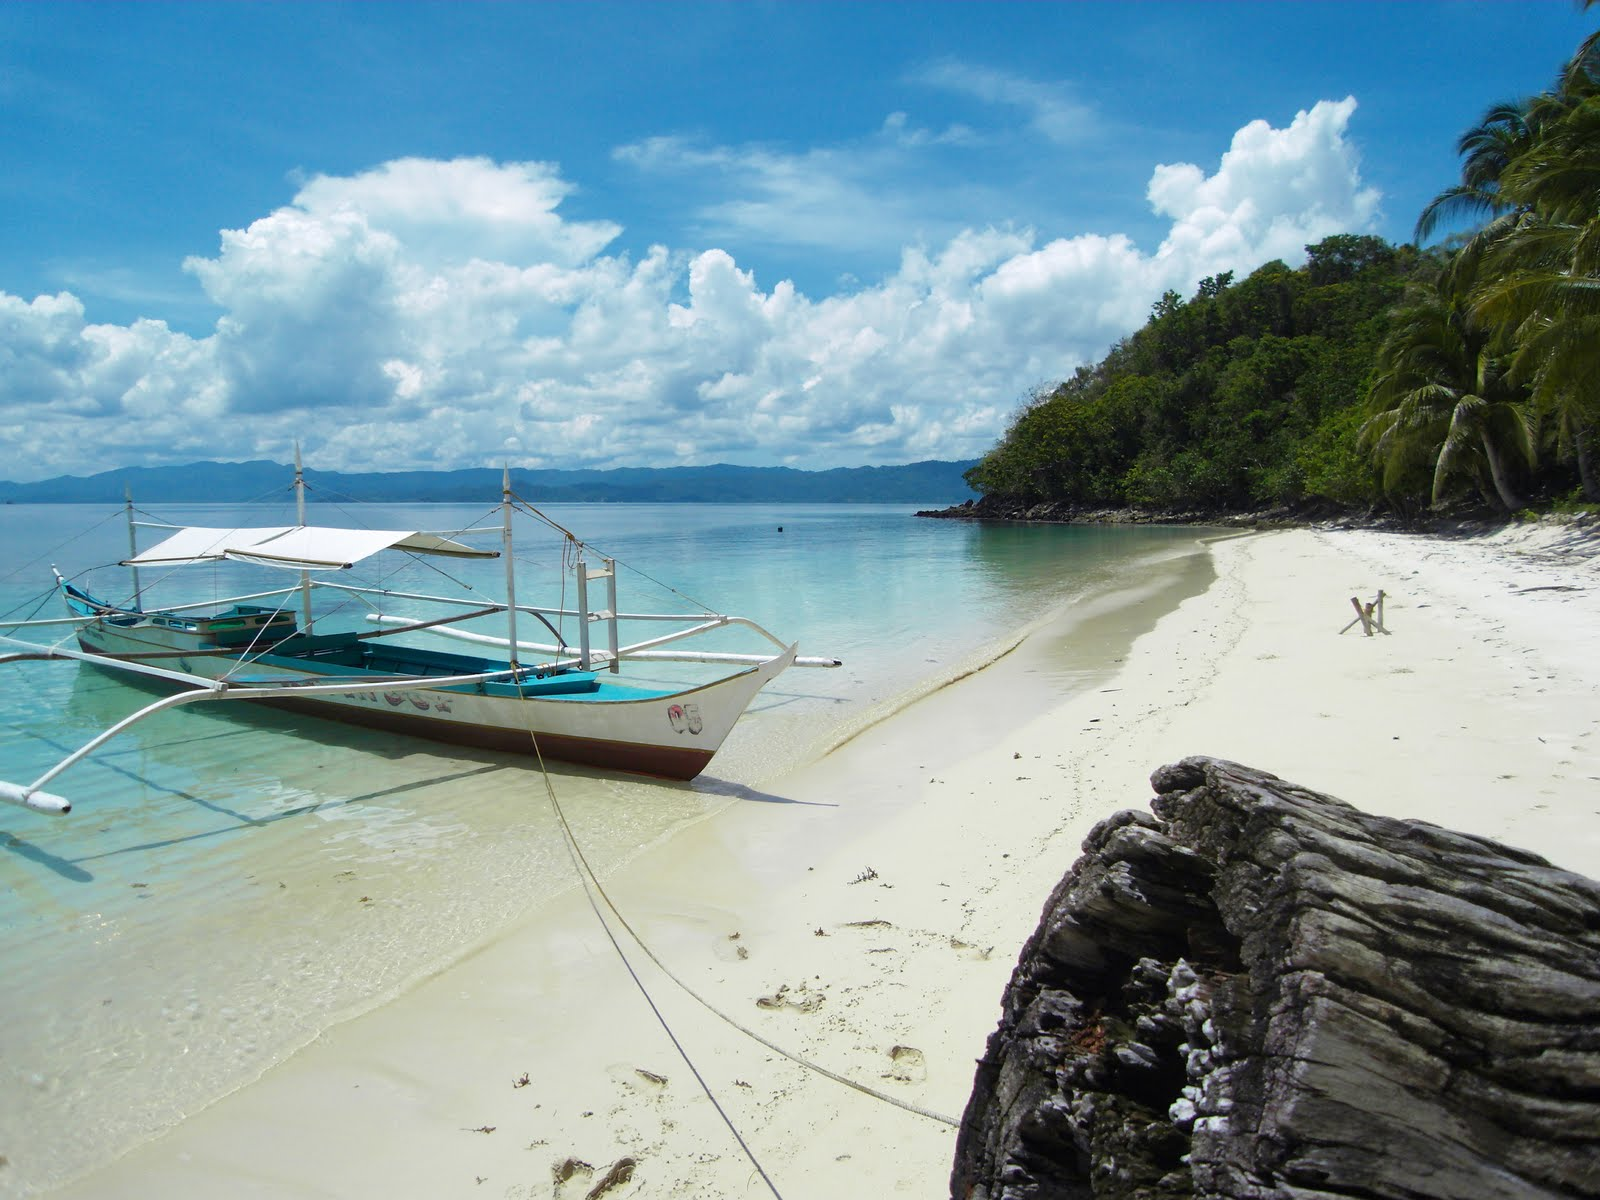 Image of a beach resort in Palawan, Philippines